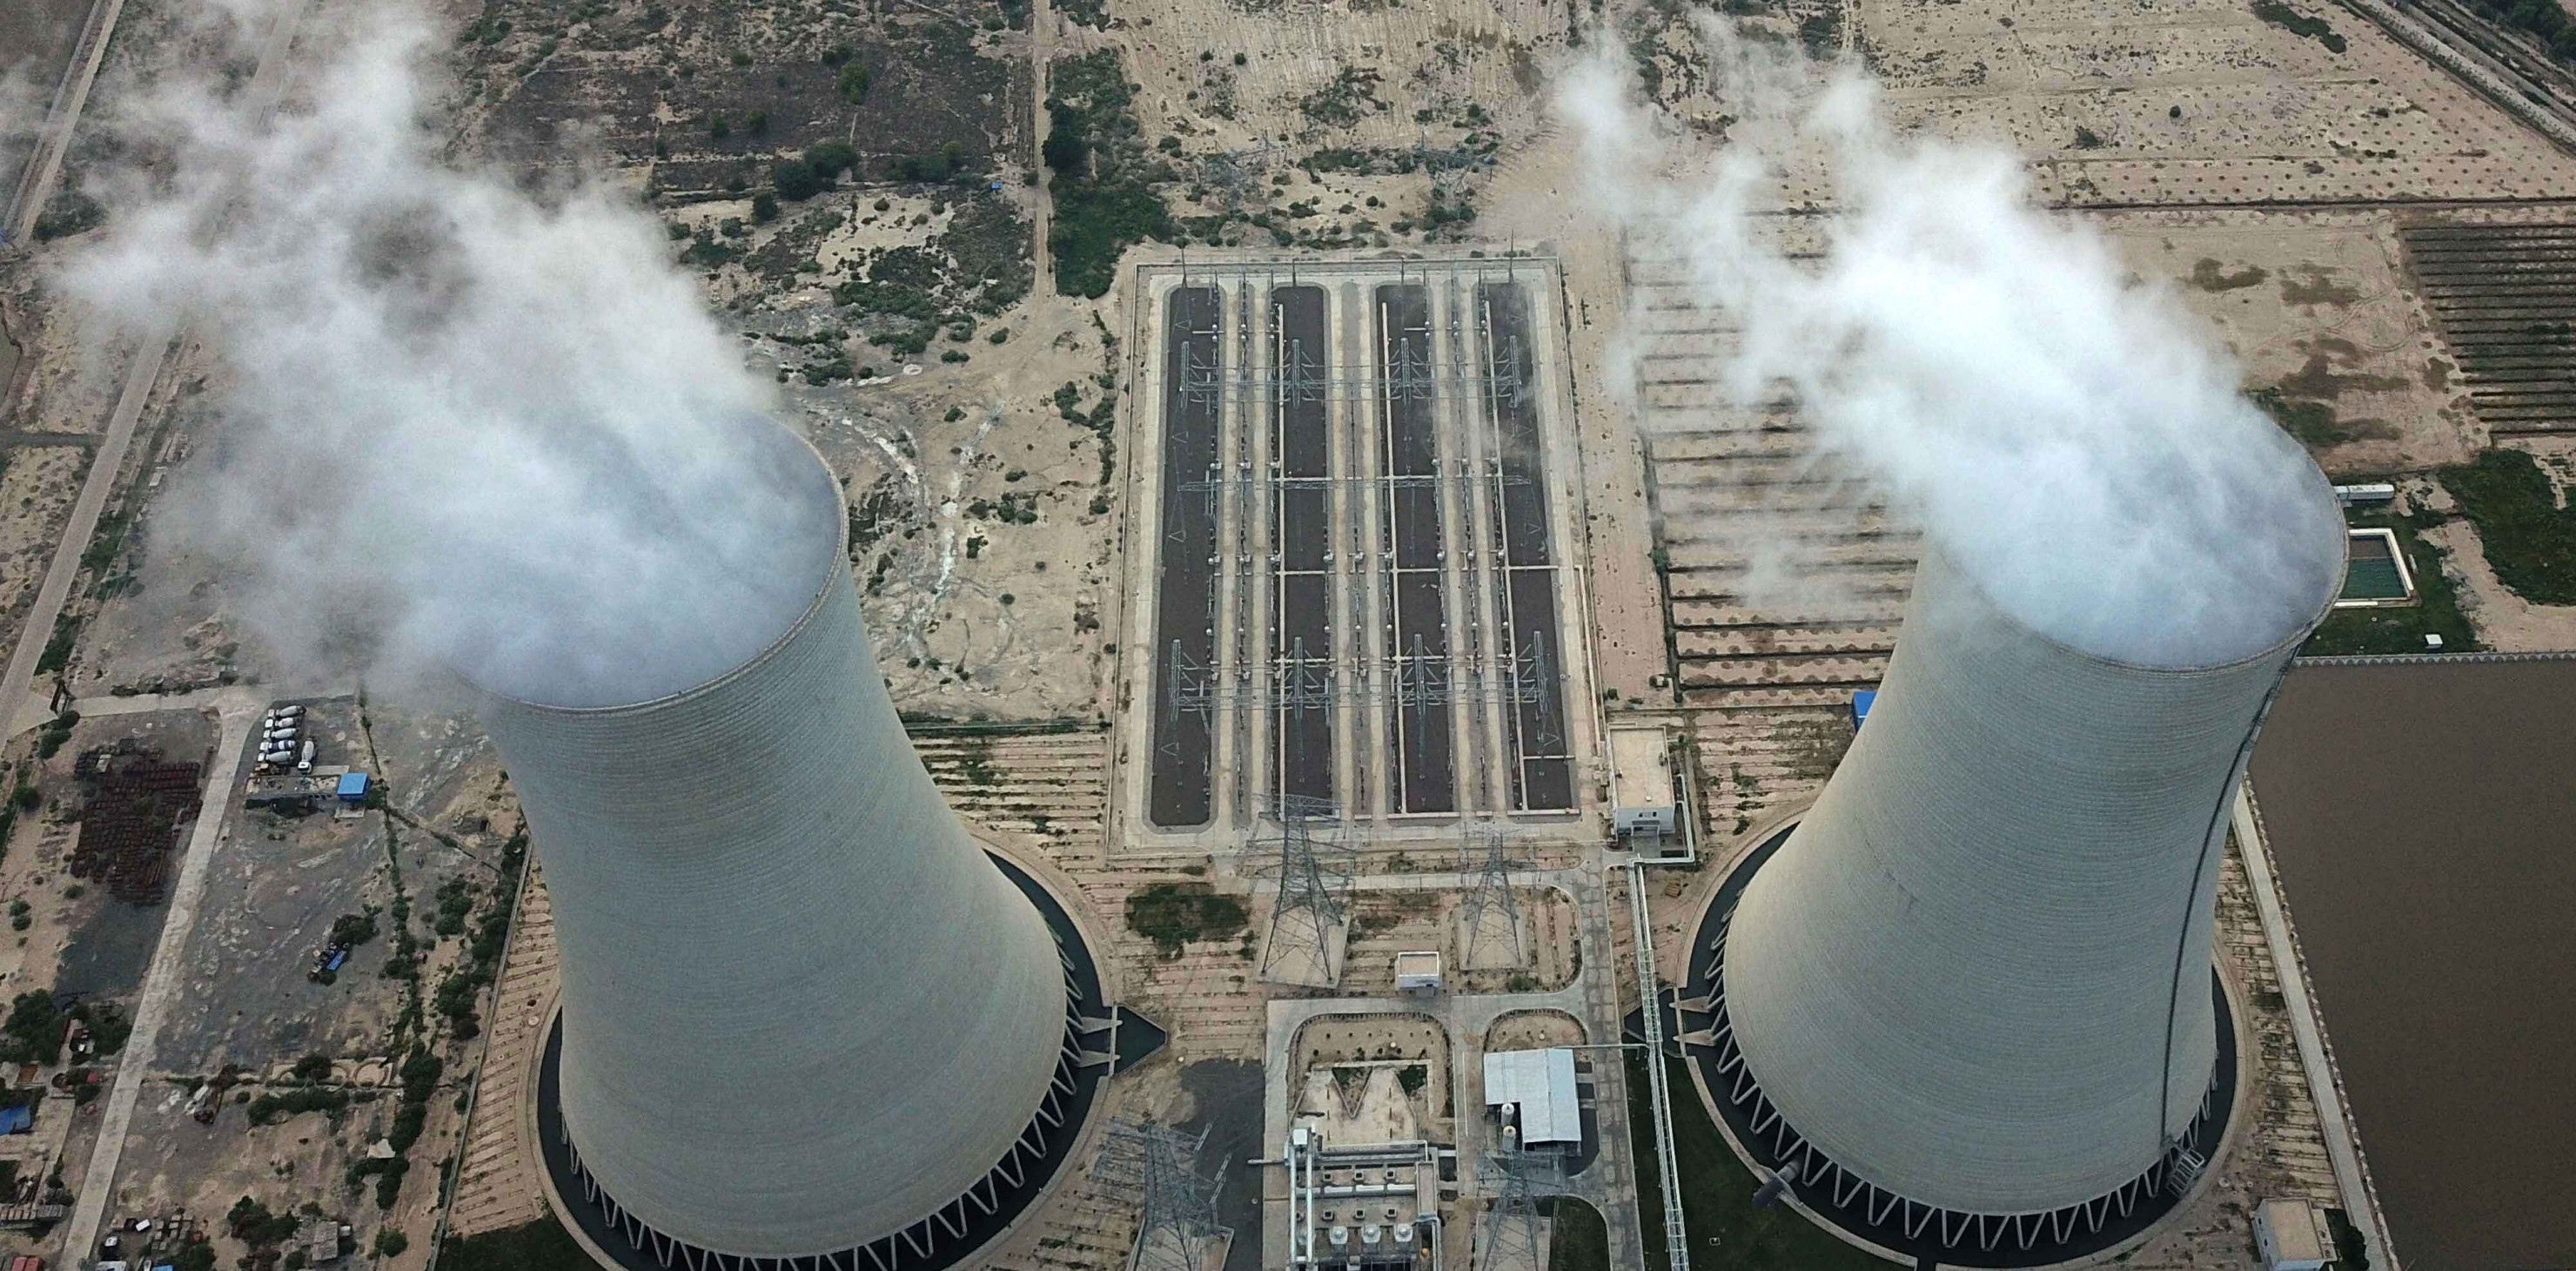 Two cooling towers of the Sahiwal Coal Power plant